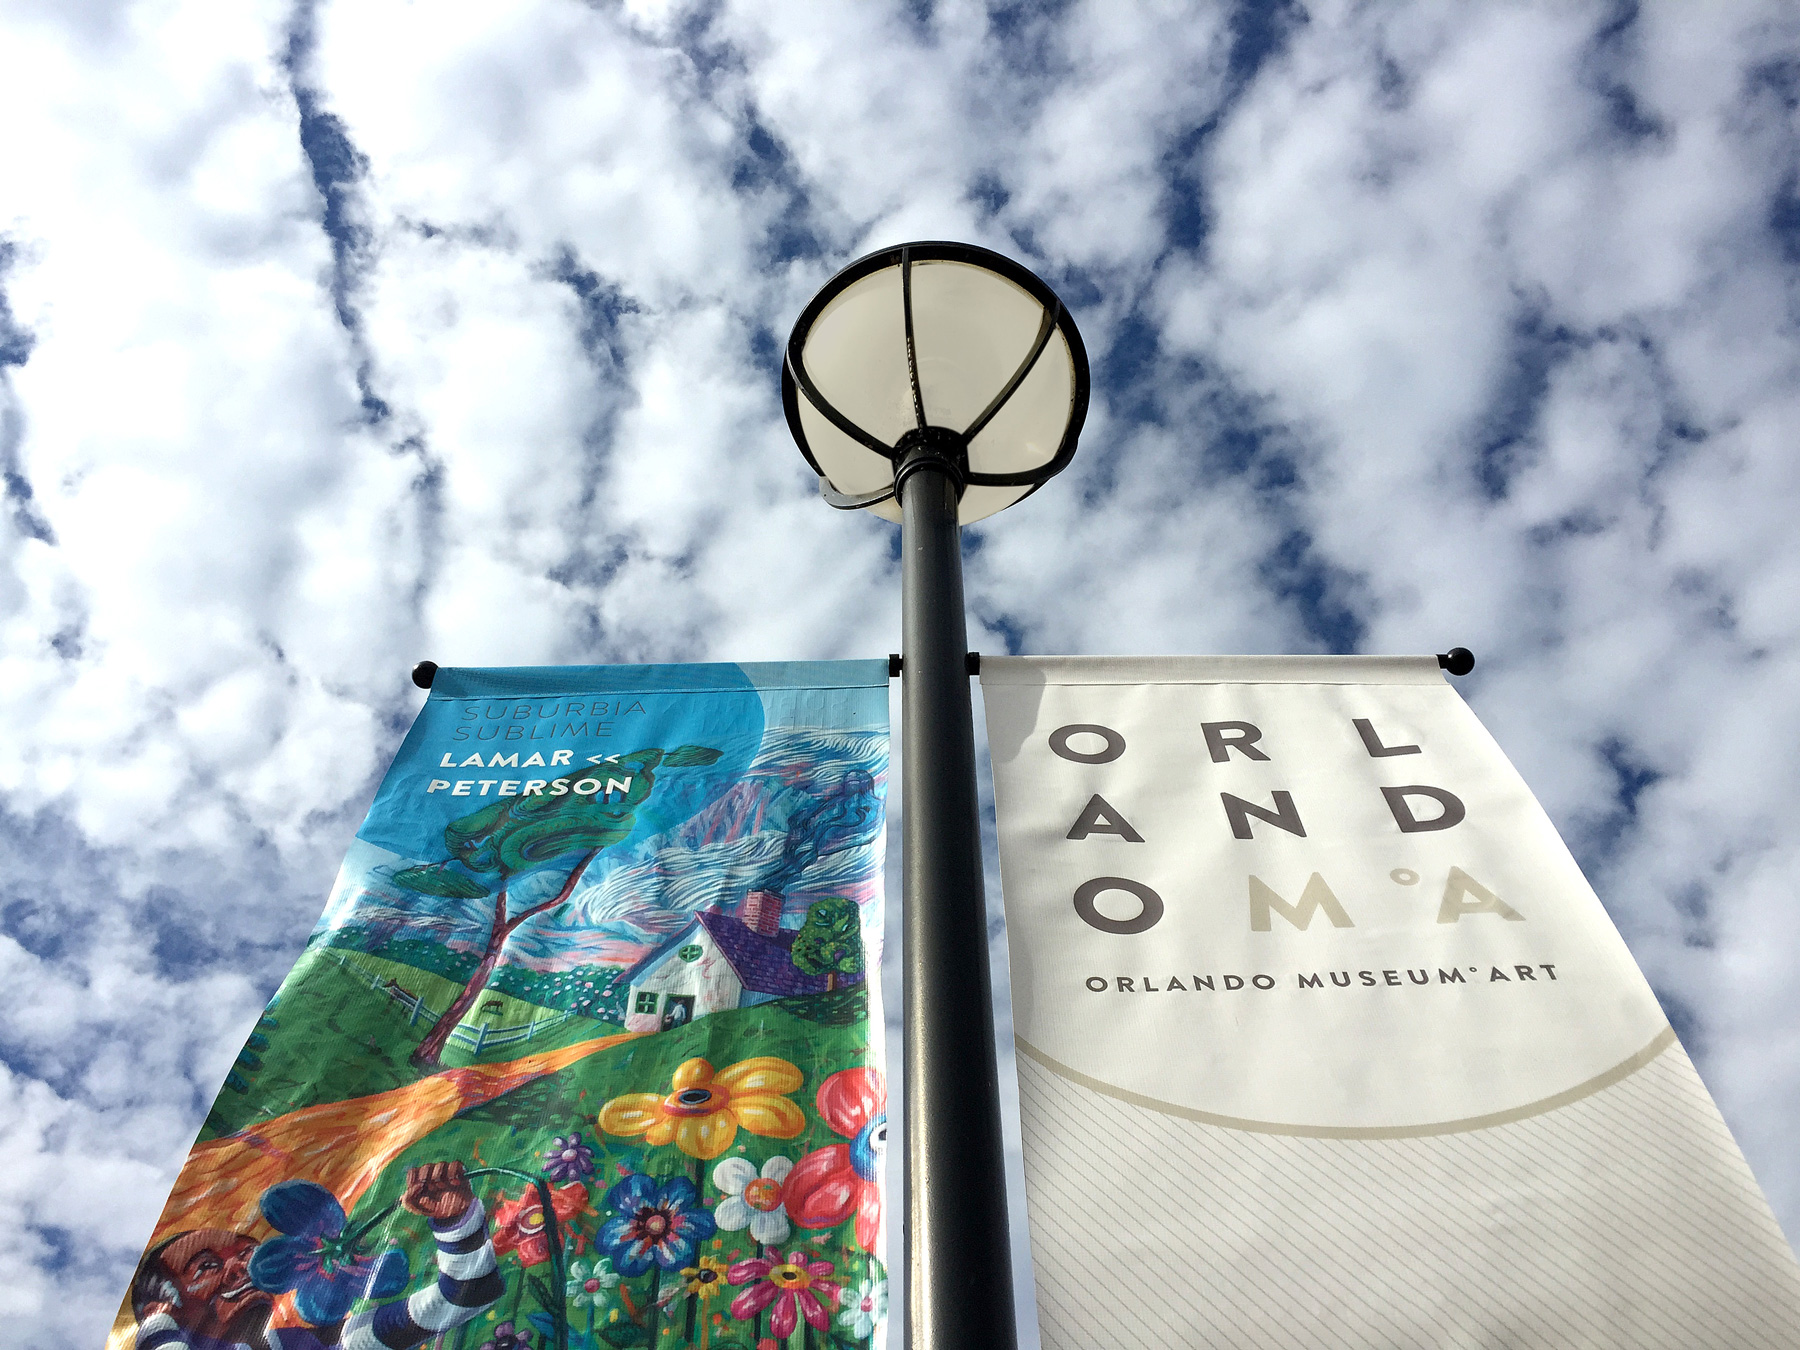 Orlando Museum Of Art Pole Banners